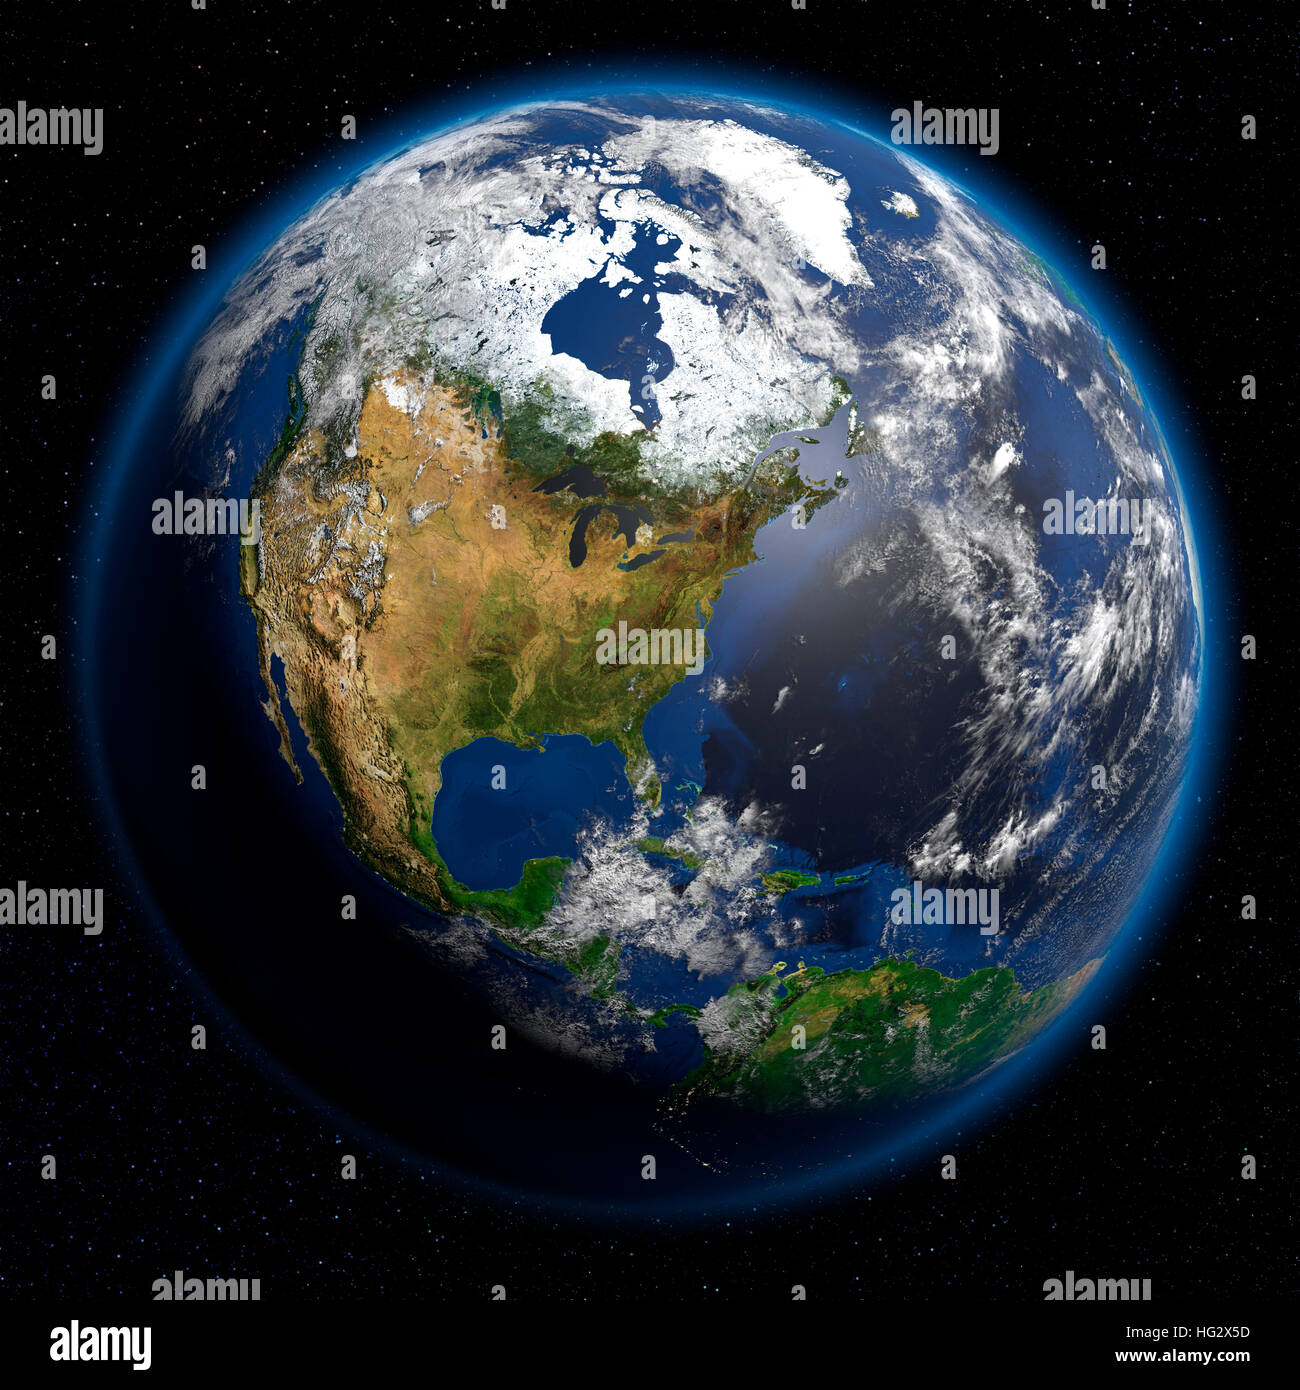 Earth viewed from space showing North America. Realistic digital illustration including relief map hill shading - Stock Image